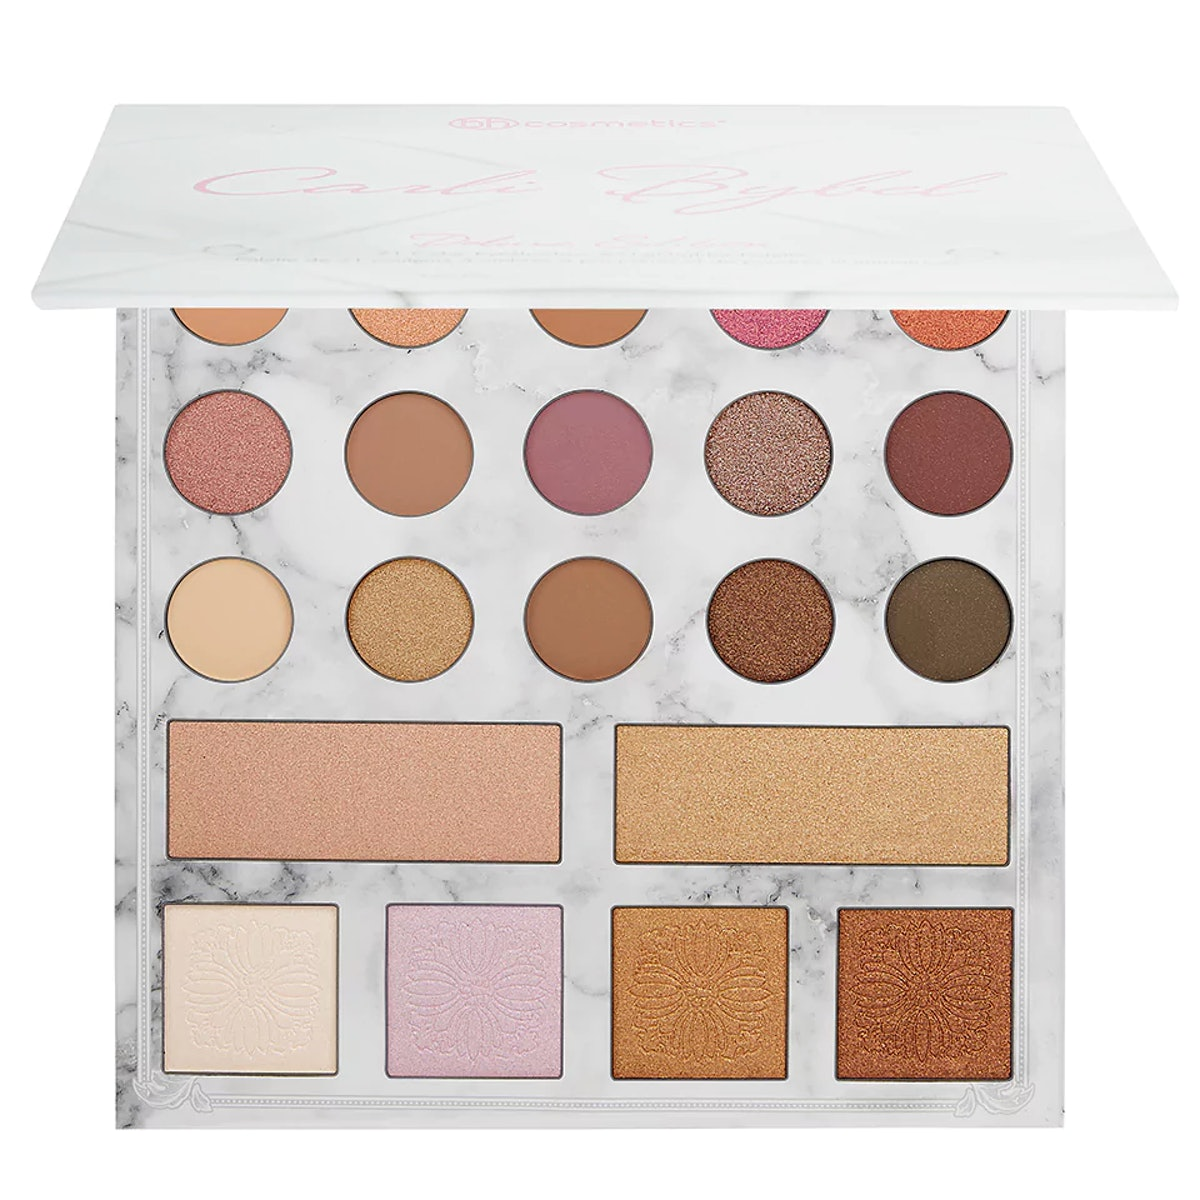 Carli Bybel Deluxe Edition 21 Color Eyeshadow & Highlighter Palette